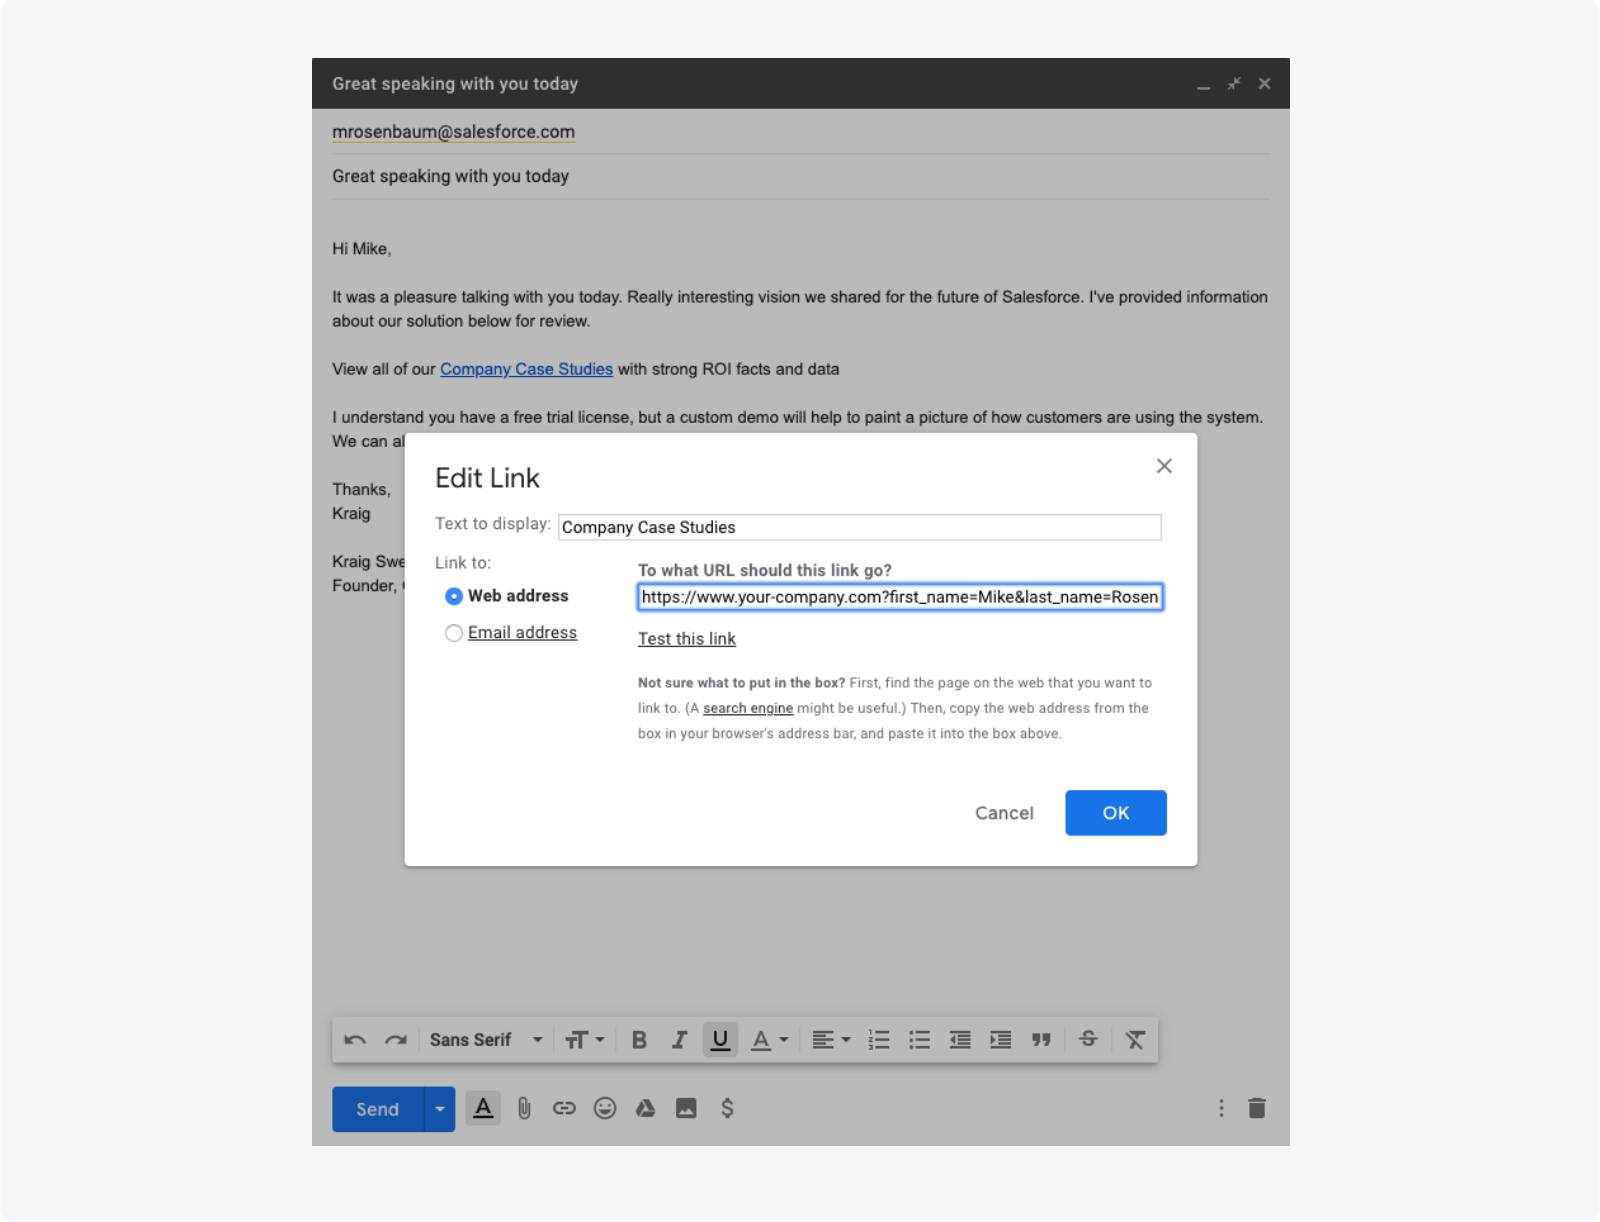 Constructing an email or email template with URL parameters